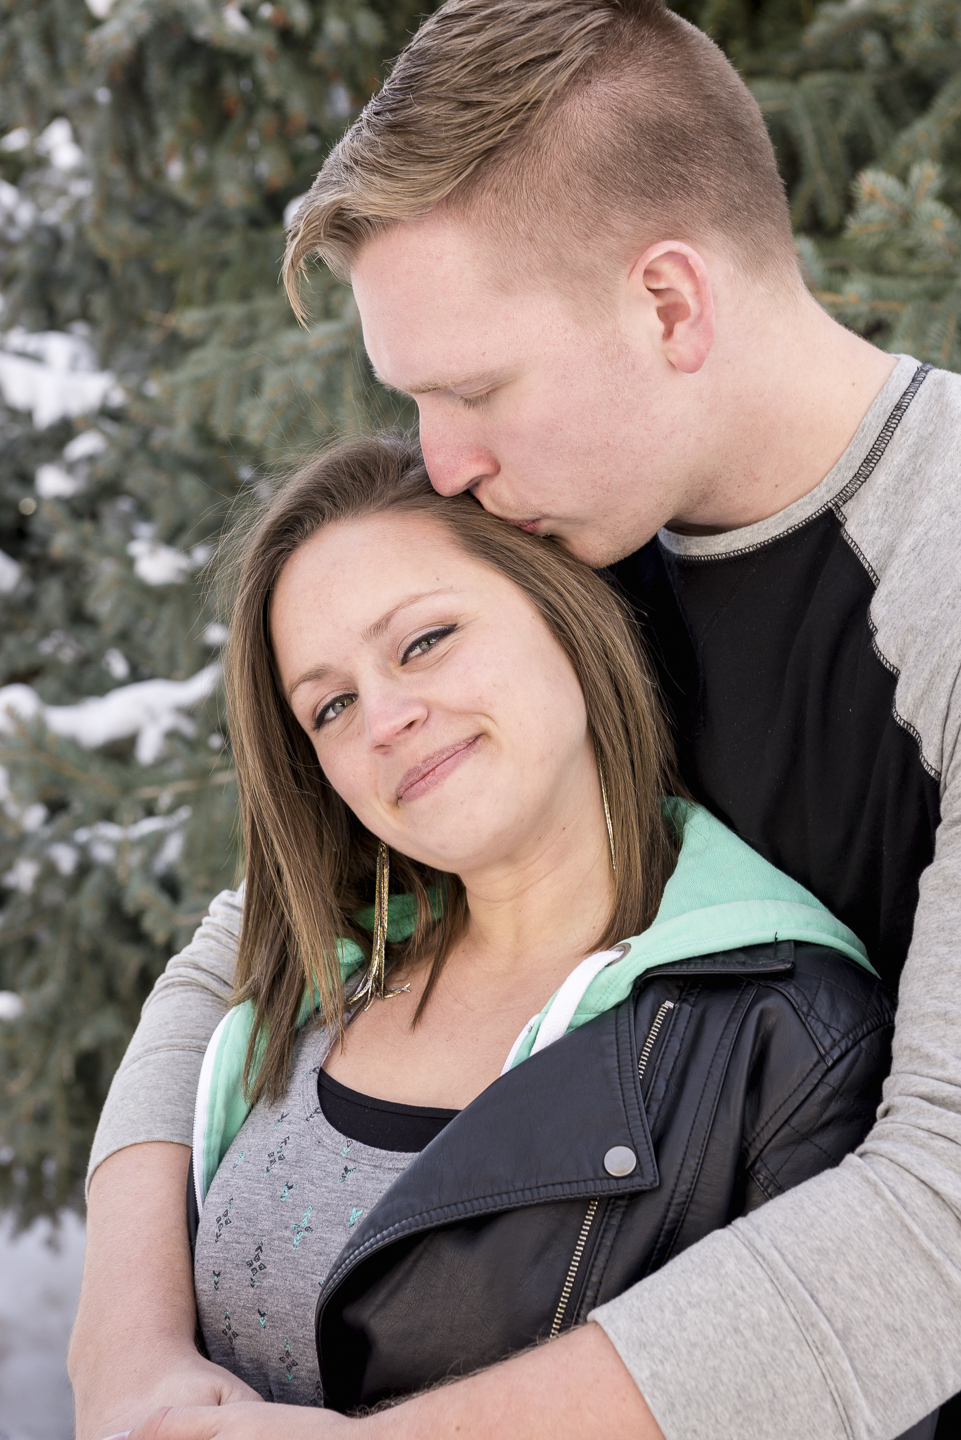 savage_couple_portrait_snow_pine_utah_Christin-3.jpg